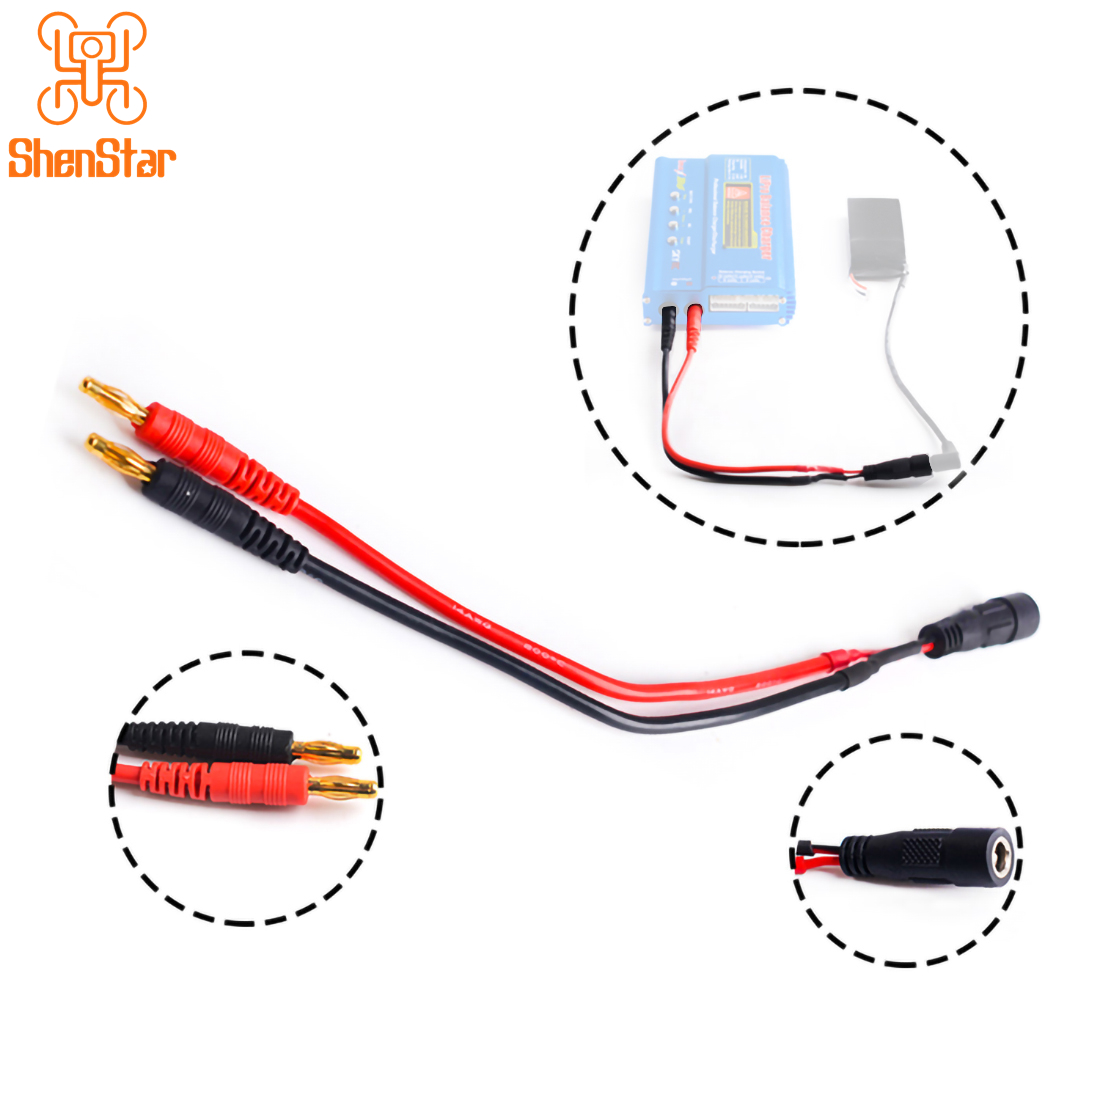 4.0mm Banana Head Transfer To Fatshark FPV Video Glasses Battery Connecting Cable For B6 Lipo Balance Charger Charging Line Wire